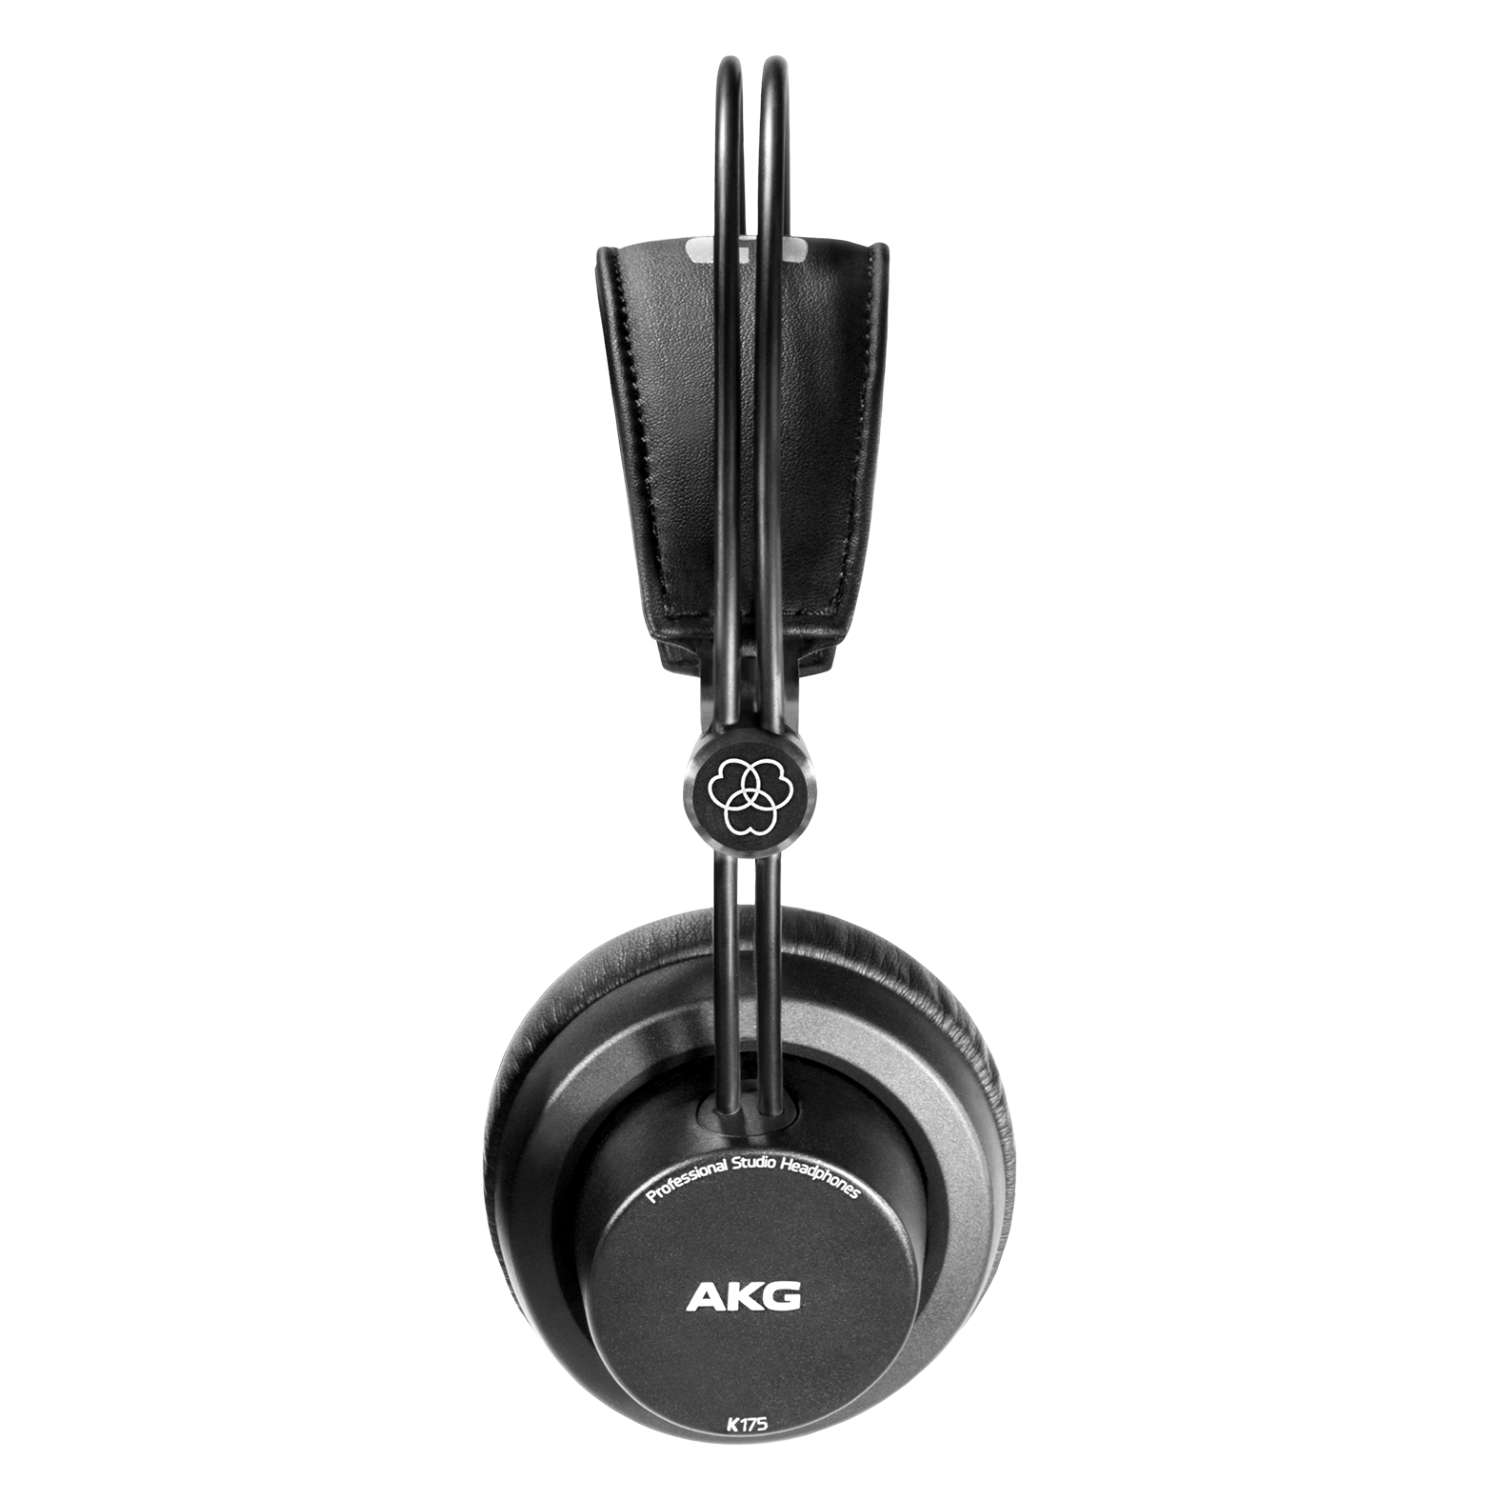 AKG K175 On-ear, closed-back, foldable studio headphones 2